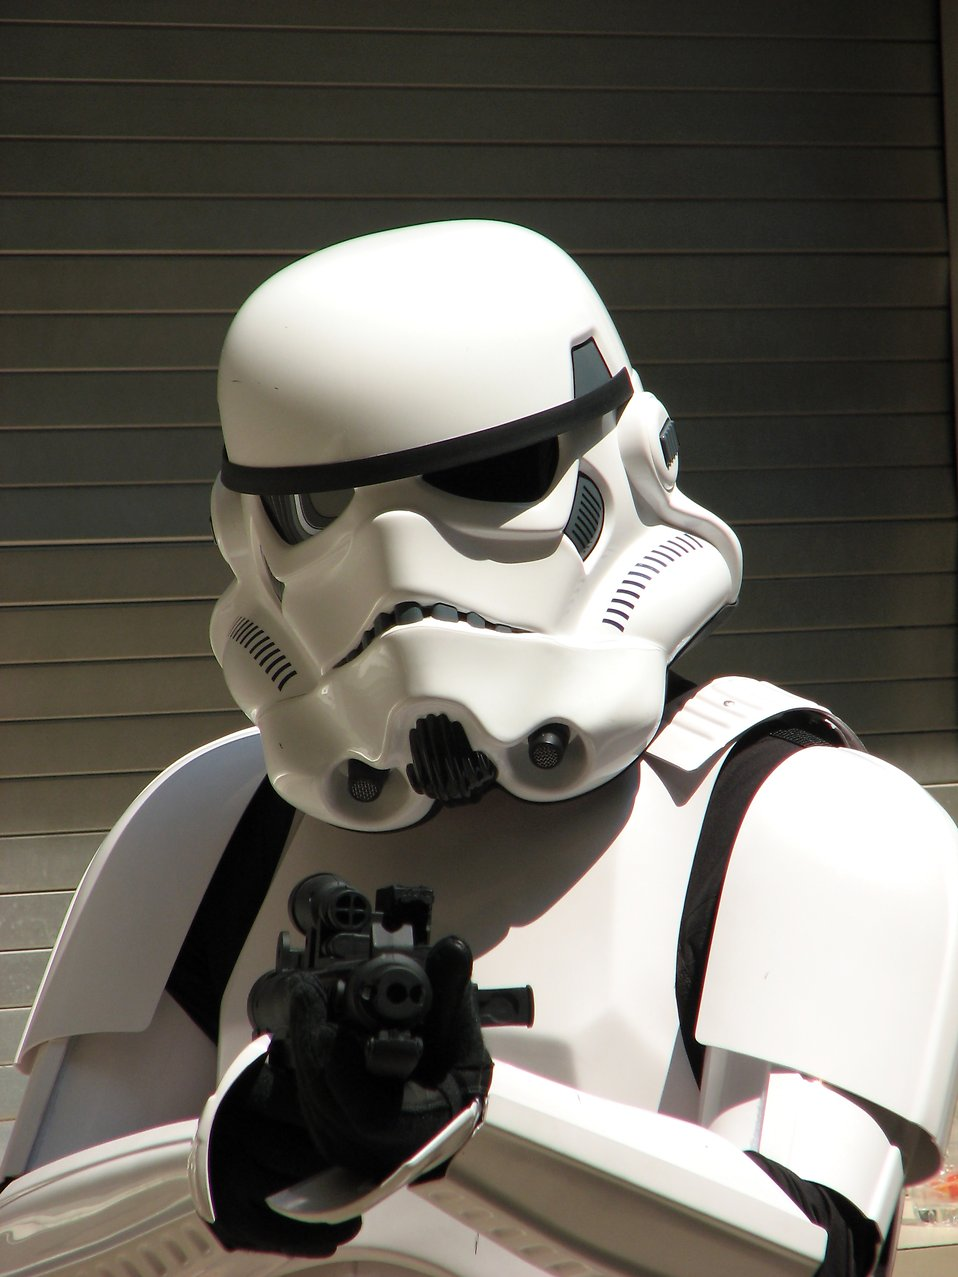 Closeup of Stormtrooper costume with blaster at Dragoncon 2008 : Free Stock Photo